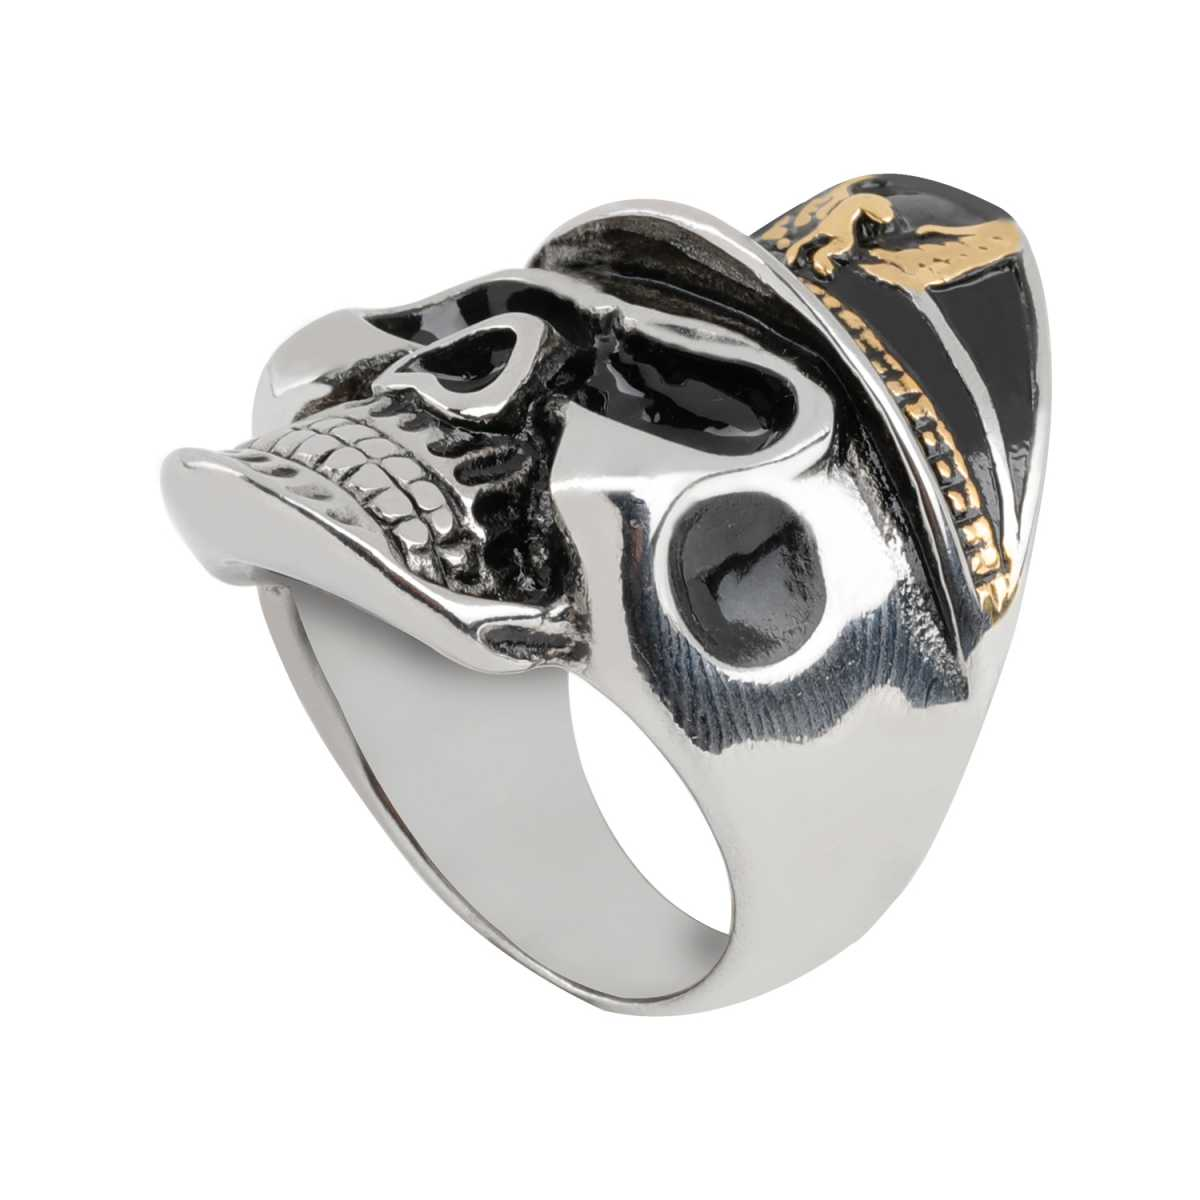 Silver Shine Stainless Steel Cowboy Skull Bikers Ring for Boys and Men